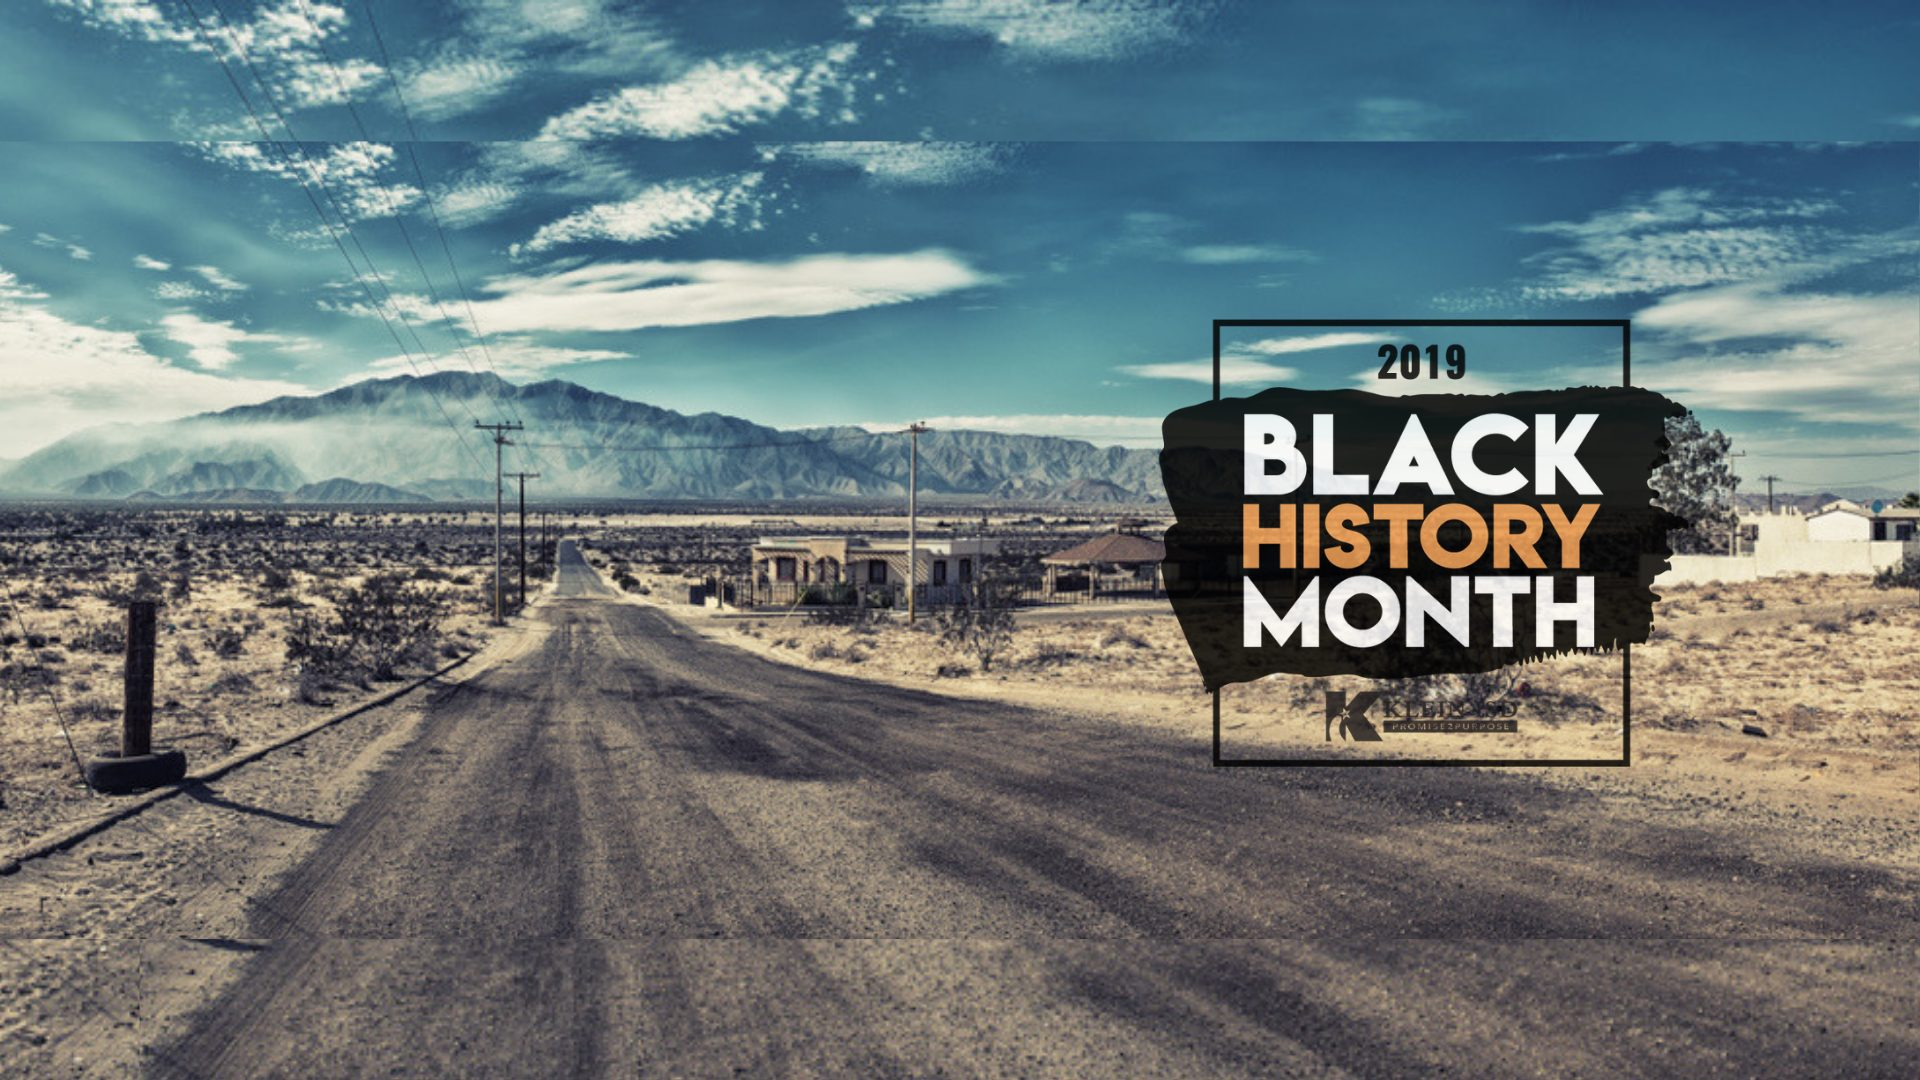 Lost Black Towns